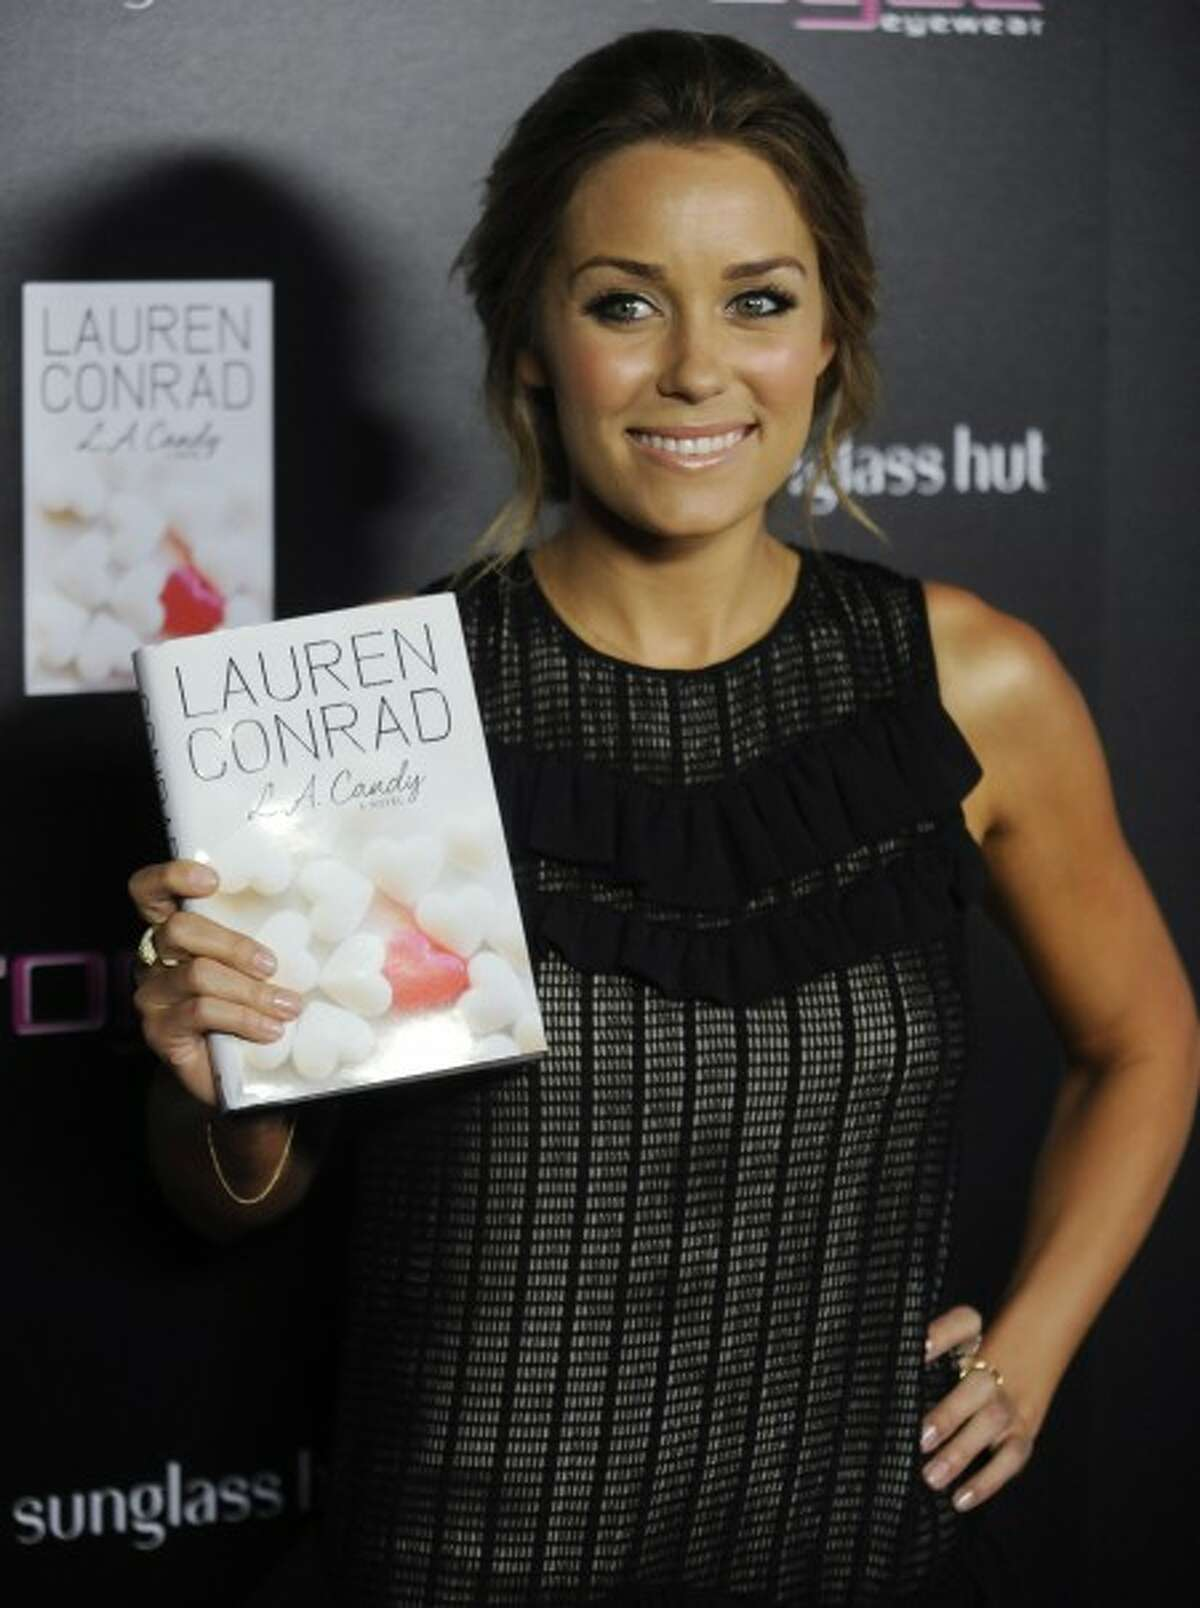 """Lauren Conrad arrives at the launch of her new novel """"L.A. Candy"""" June 10 in Beverly Hills, Calif. (AP Photo/Chris Pizzello, file)"""